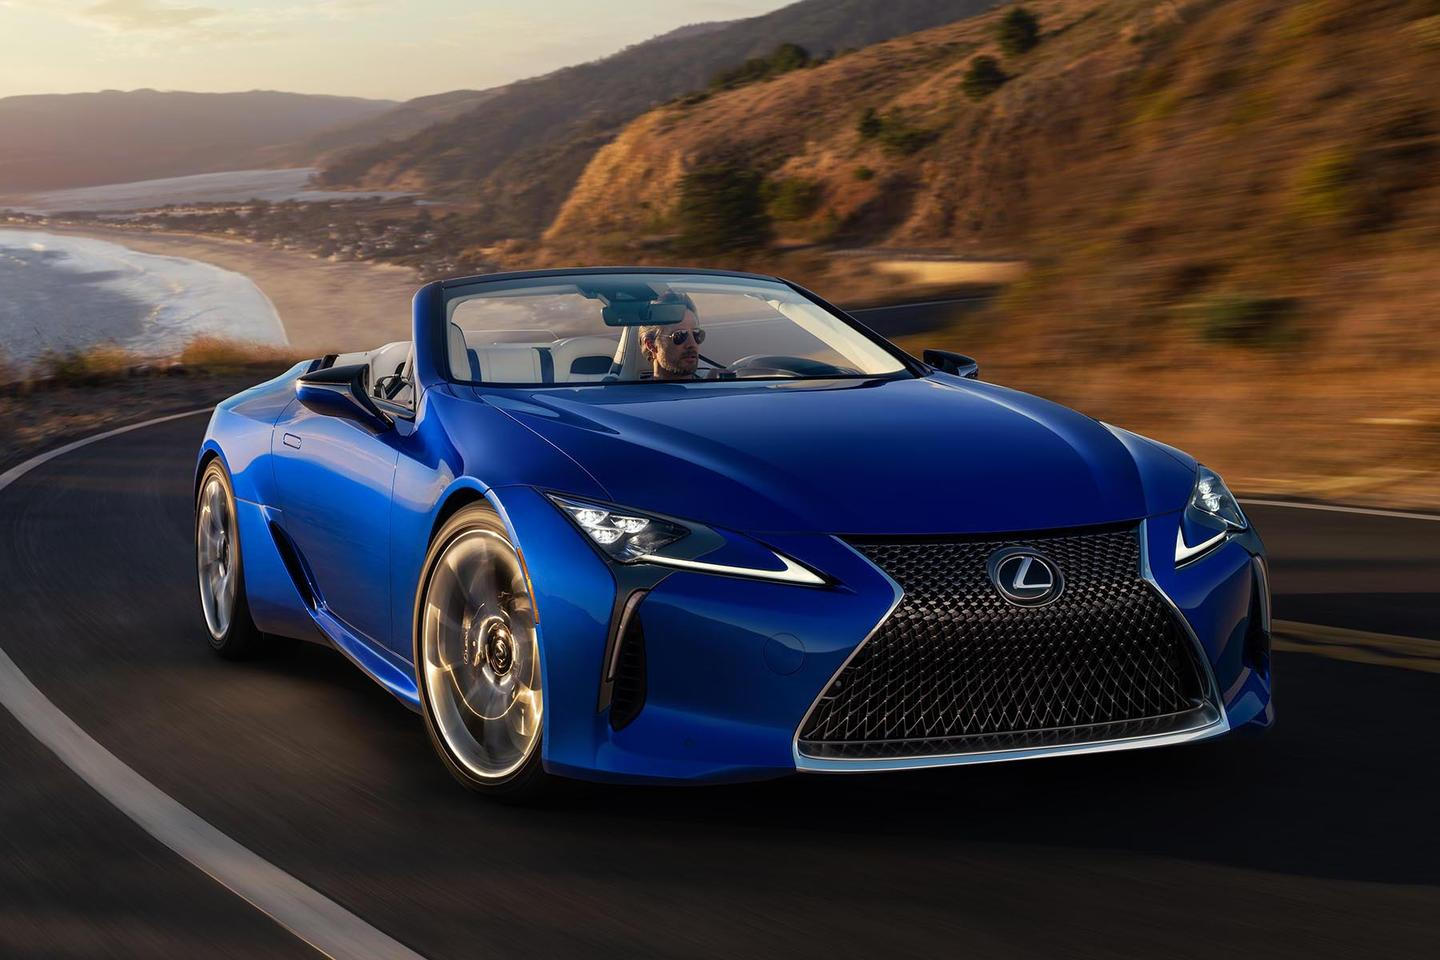 """This is the first 2021 Lexus LC 500 Convertible. The car is one of 100 cars customized to be part of the 2021 Lexus LC 500 Convertible Inspiration Series, with special paint, wheels and other component highlights, though the performance will be the same as other 471-hp LC 500s with a Direct-Shift 10-speed automatic transmission. The big difference is that this car bears VIN 100001, and carbon-fiber scuff plates imprinted with """"LC Inspiration Series Launch Exclusive 1 of 1.""""2"""